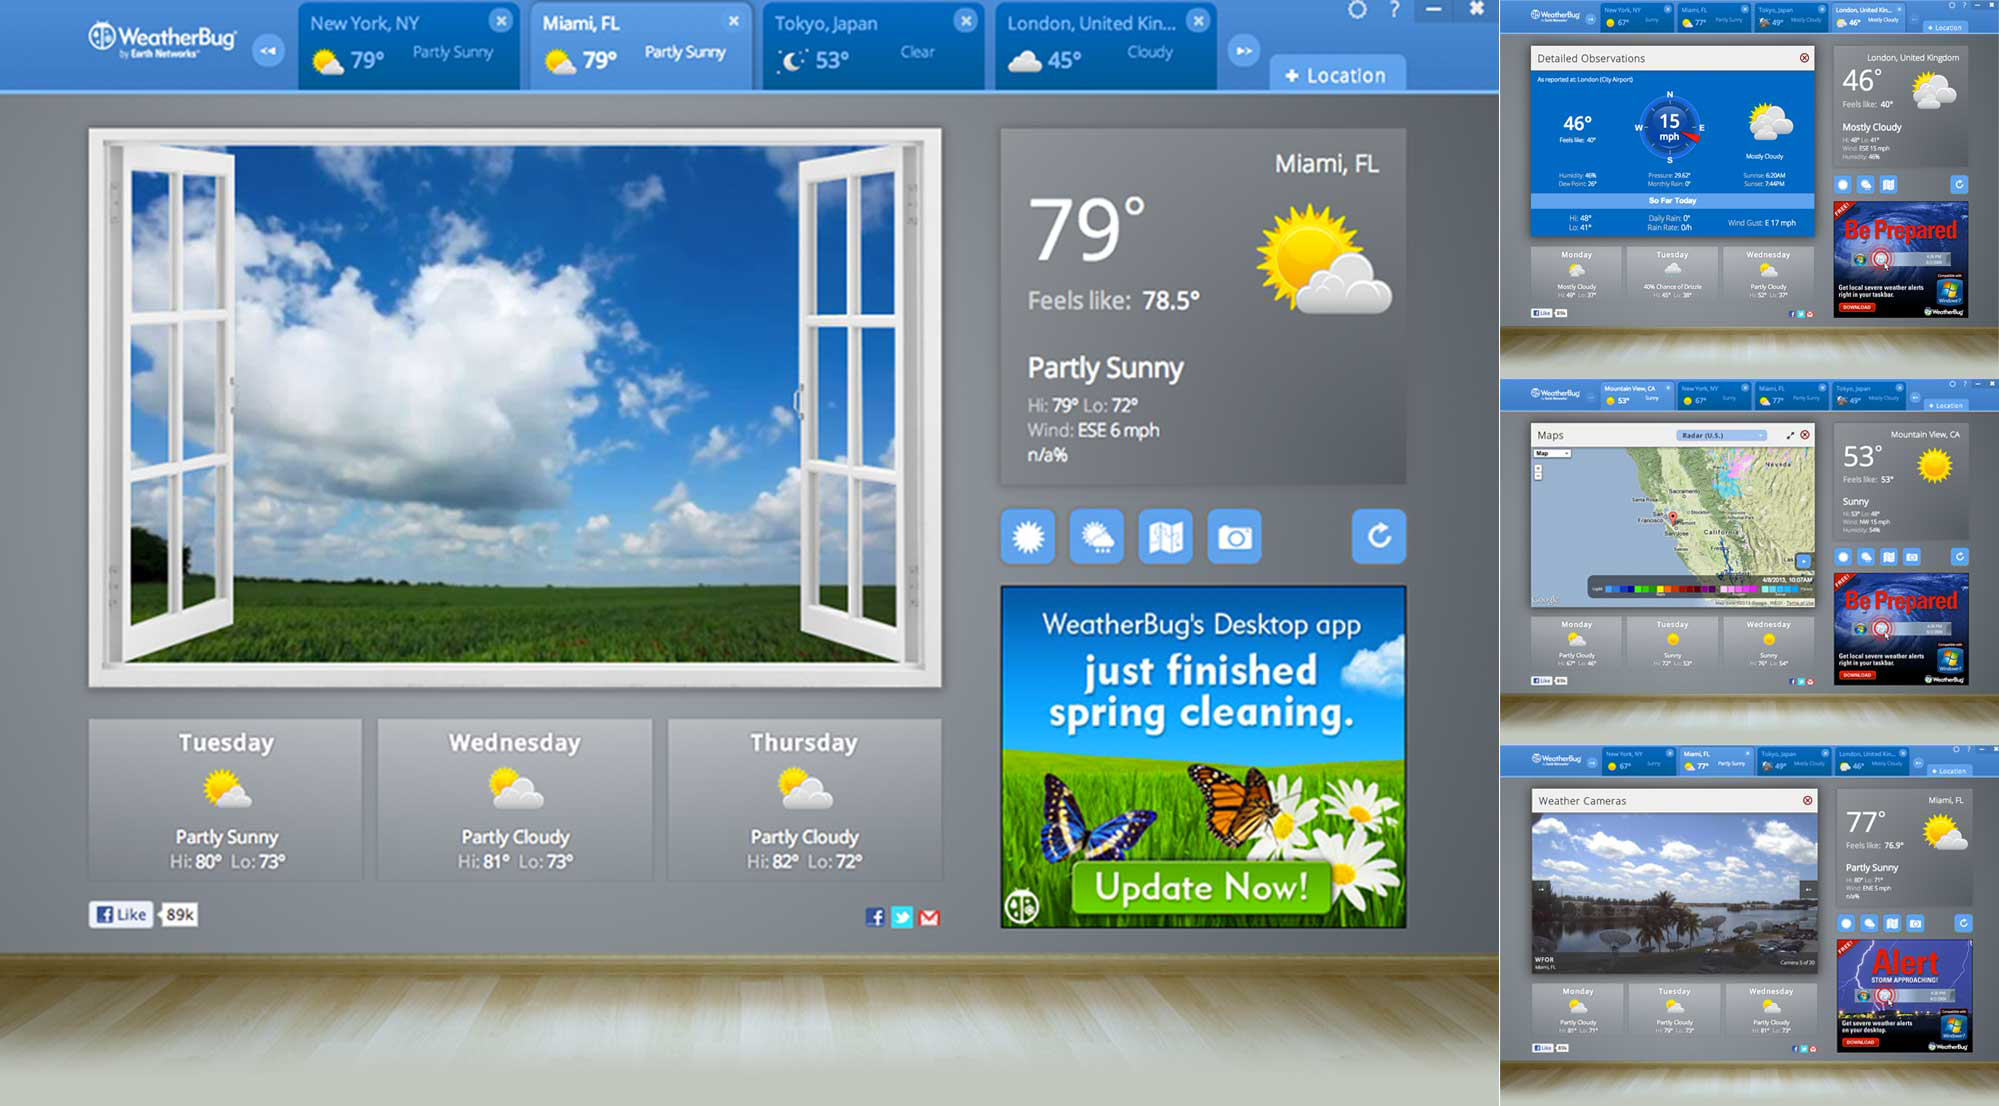 WeatherBug Becomes First Weather App to Launch on Google Chrome's